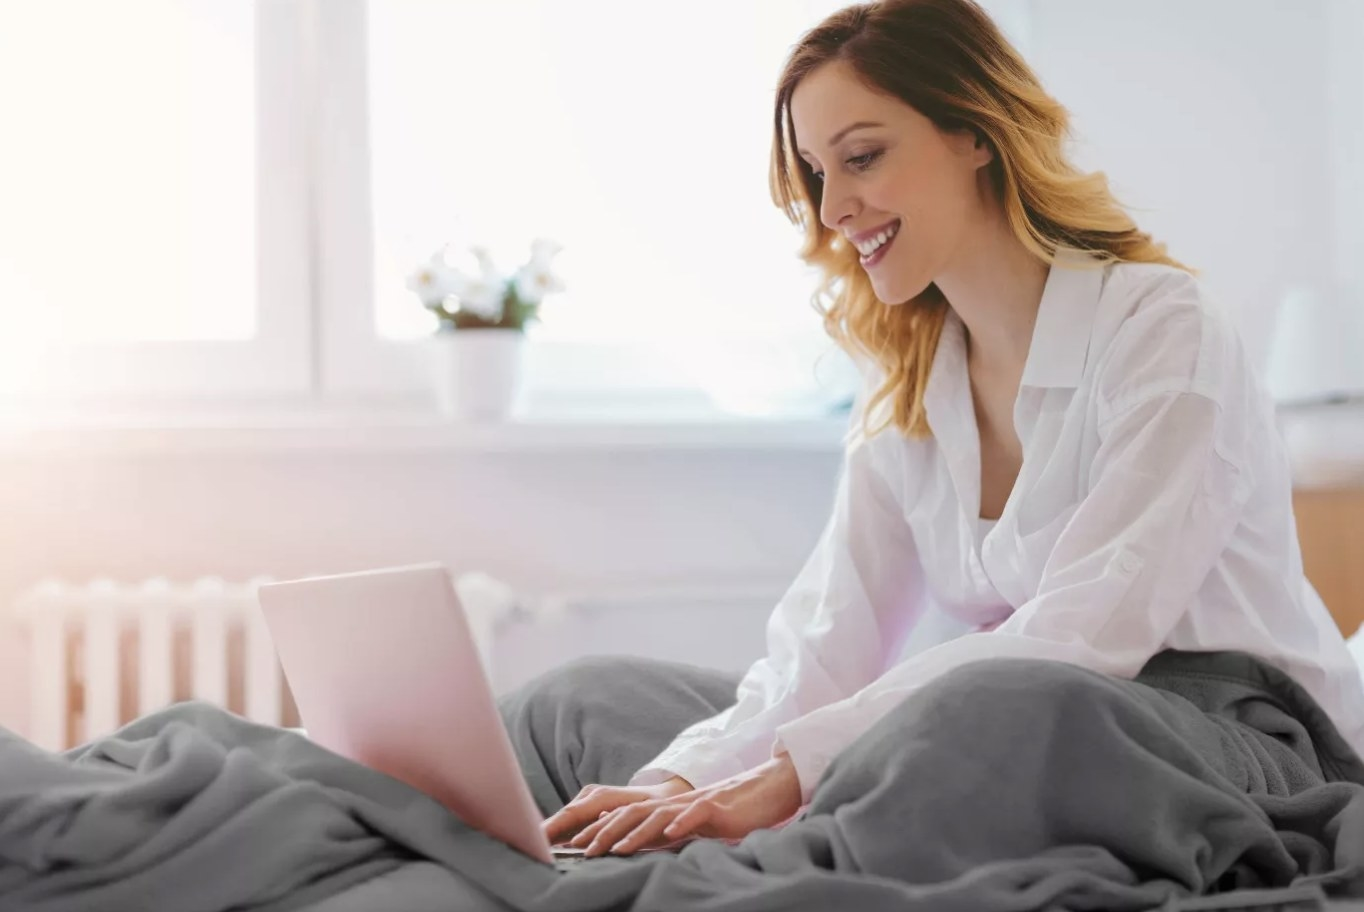 Woman uses blanket while working on laptop